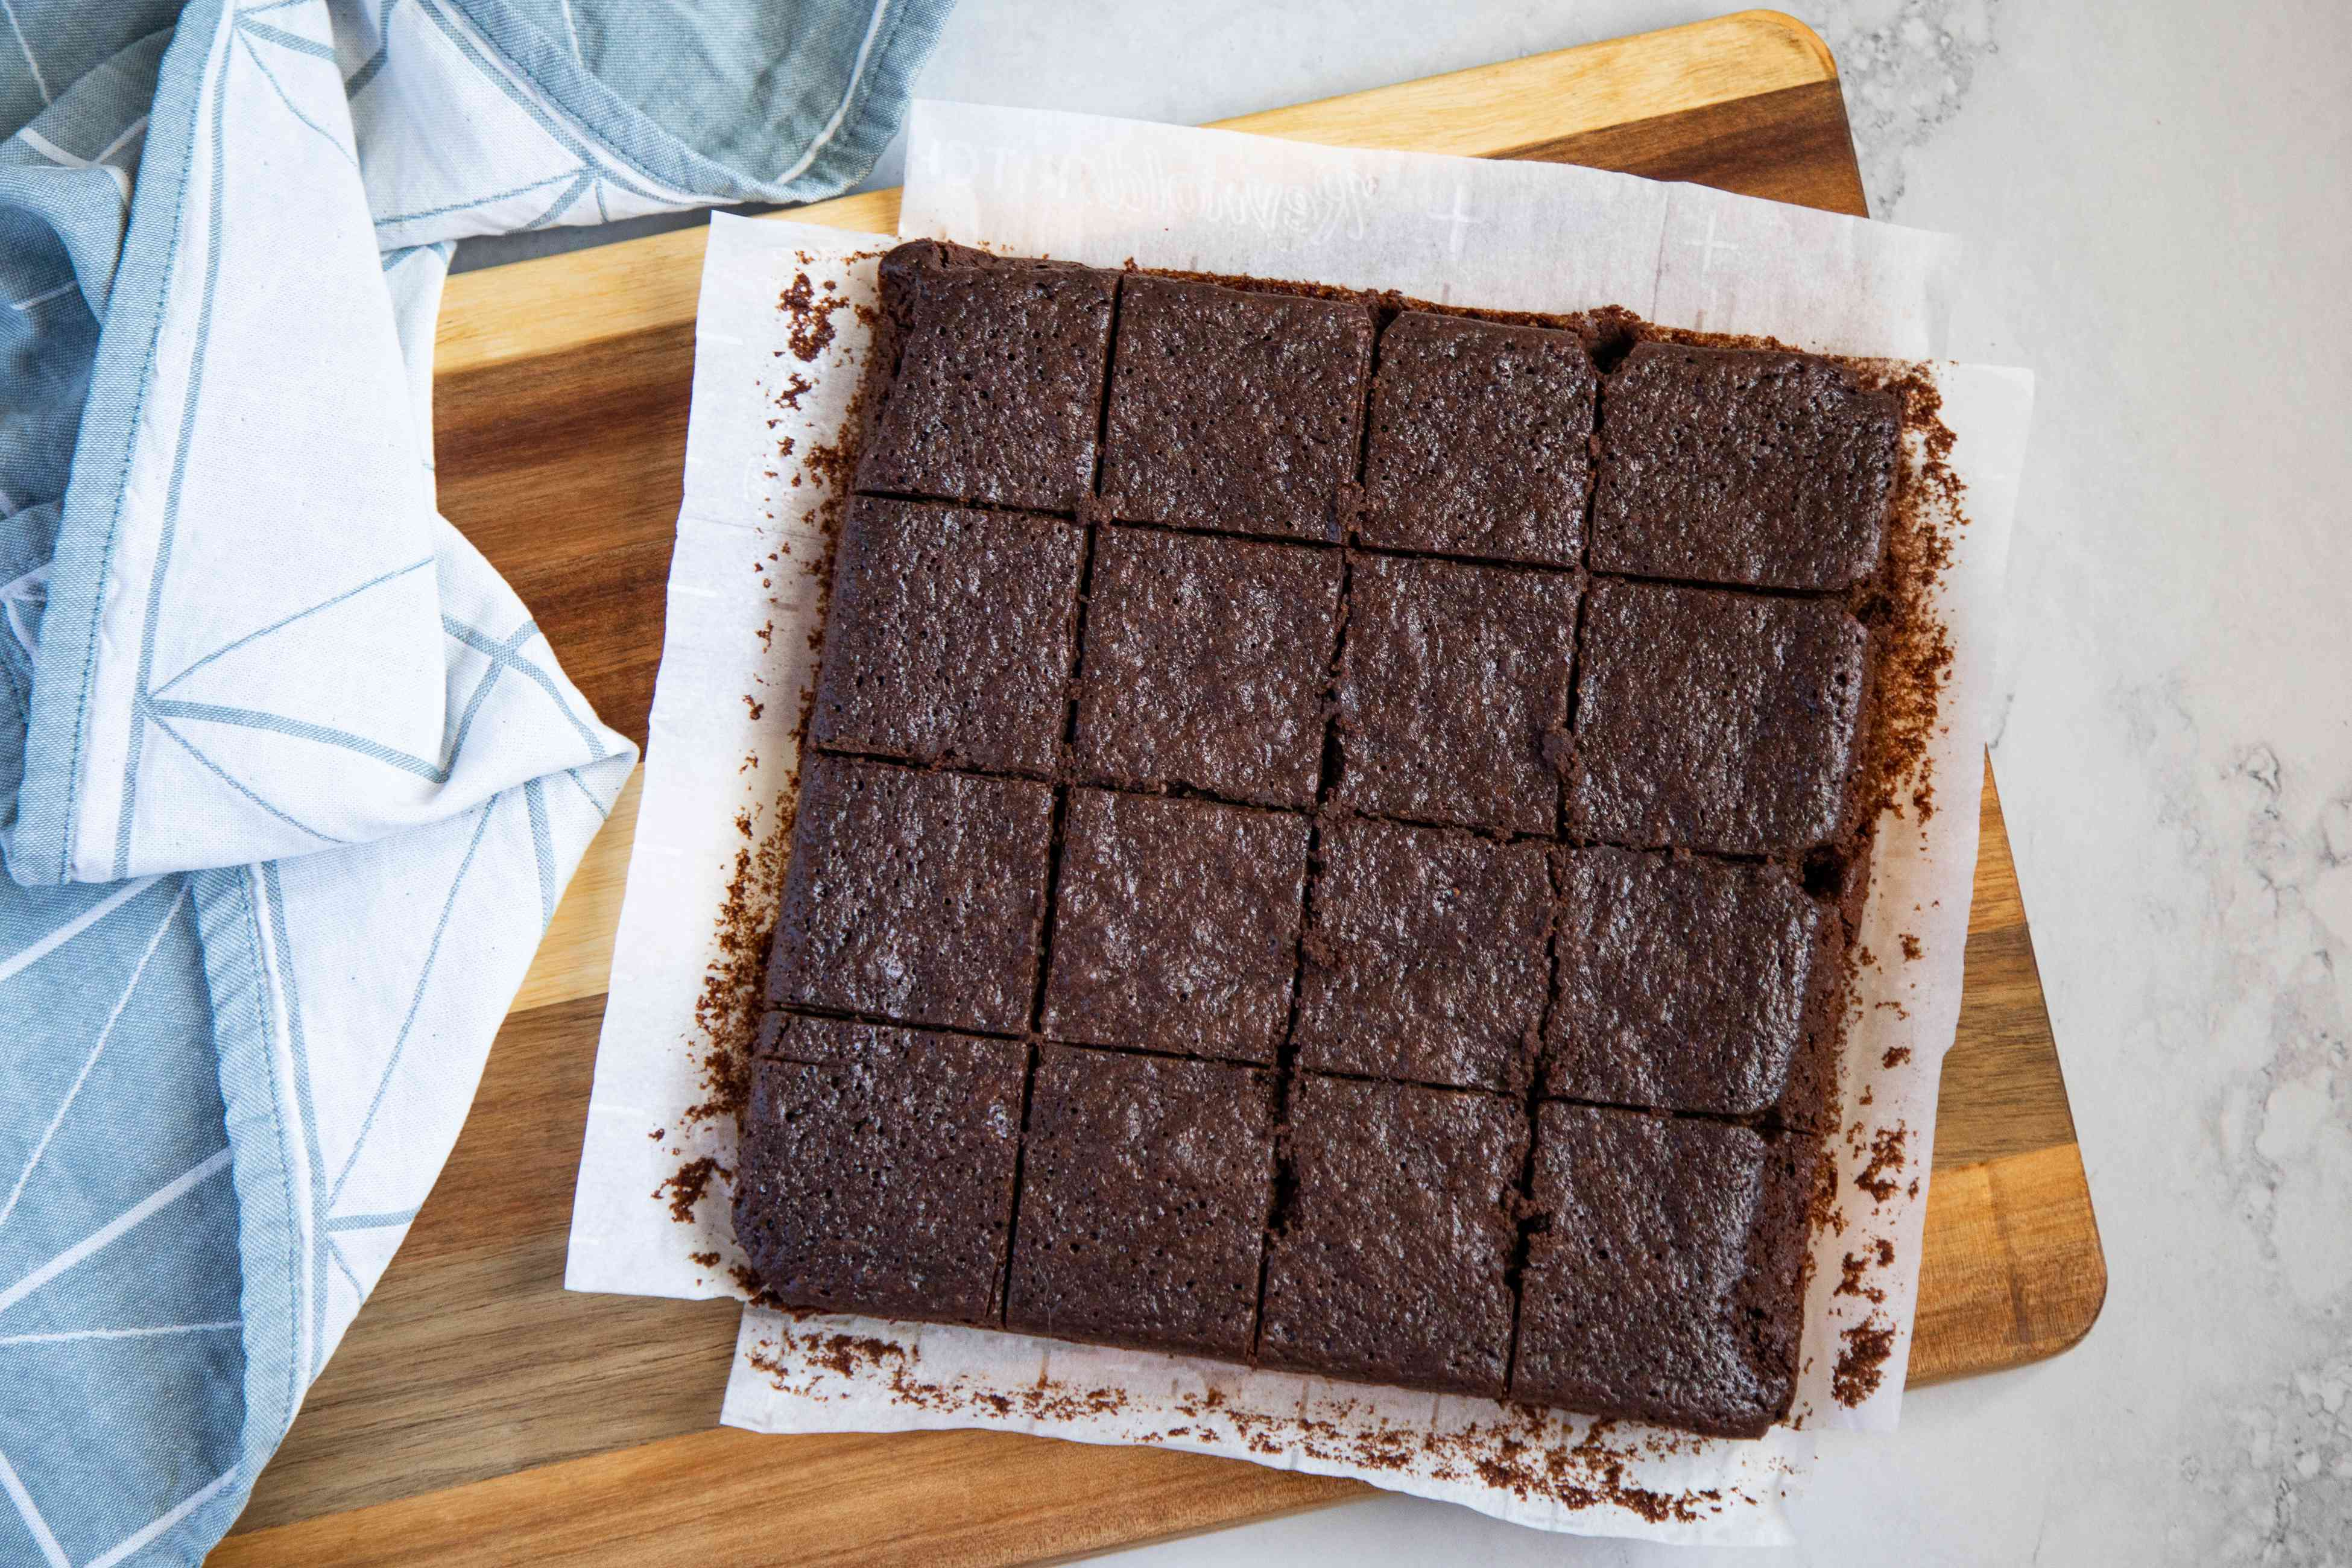 Gluten-Free Soy Sauce Brownies cut into squares on a cutting board.